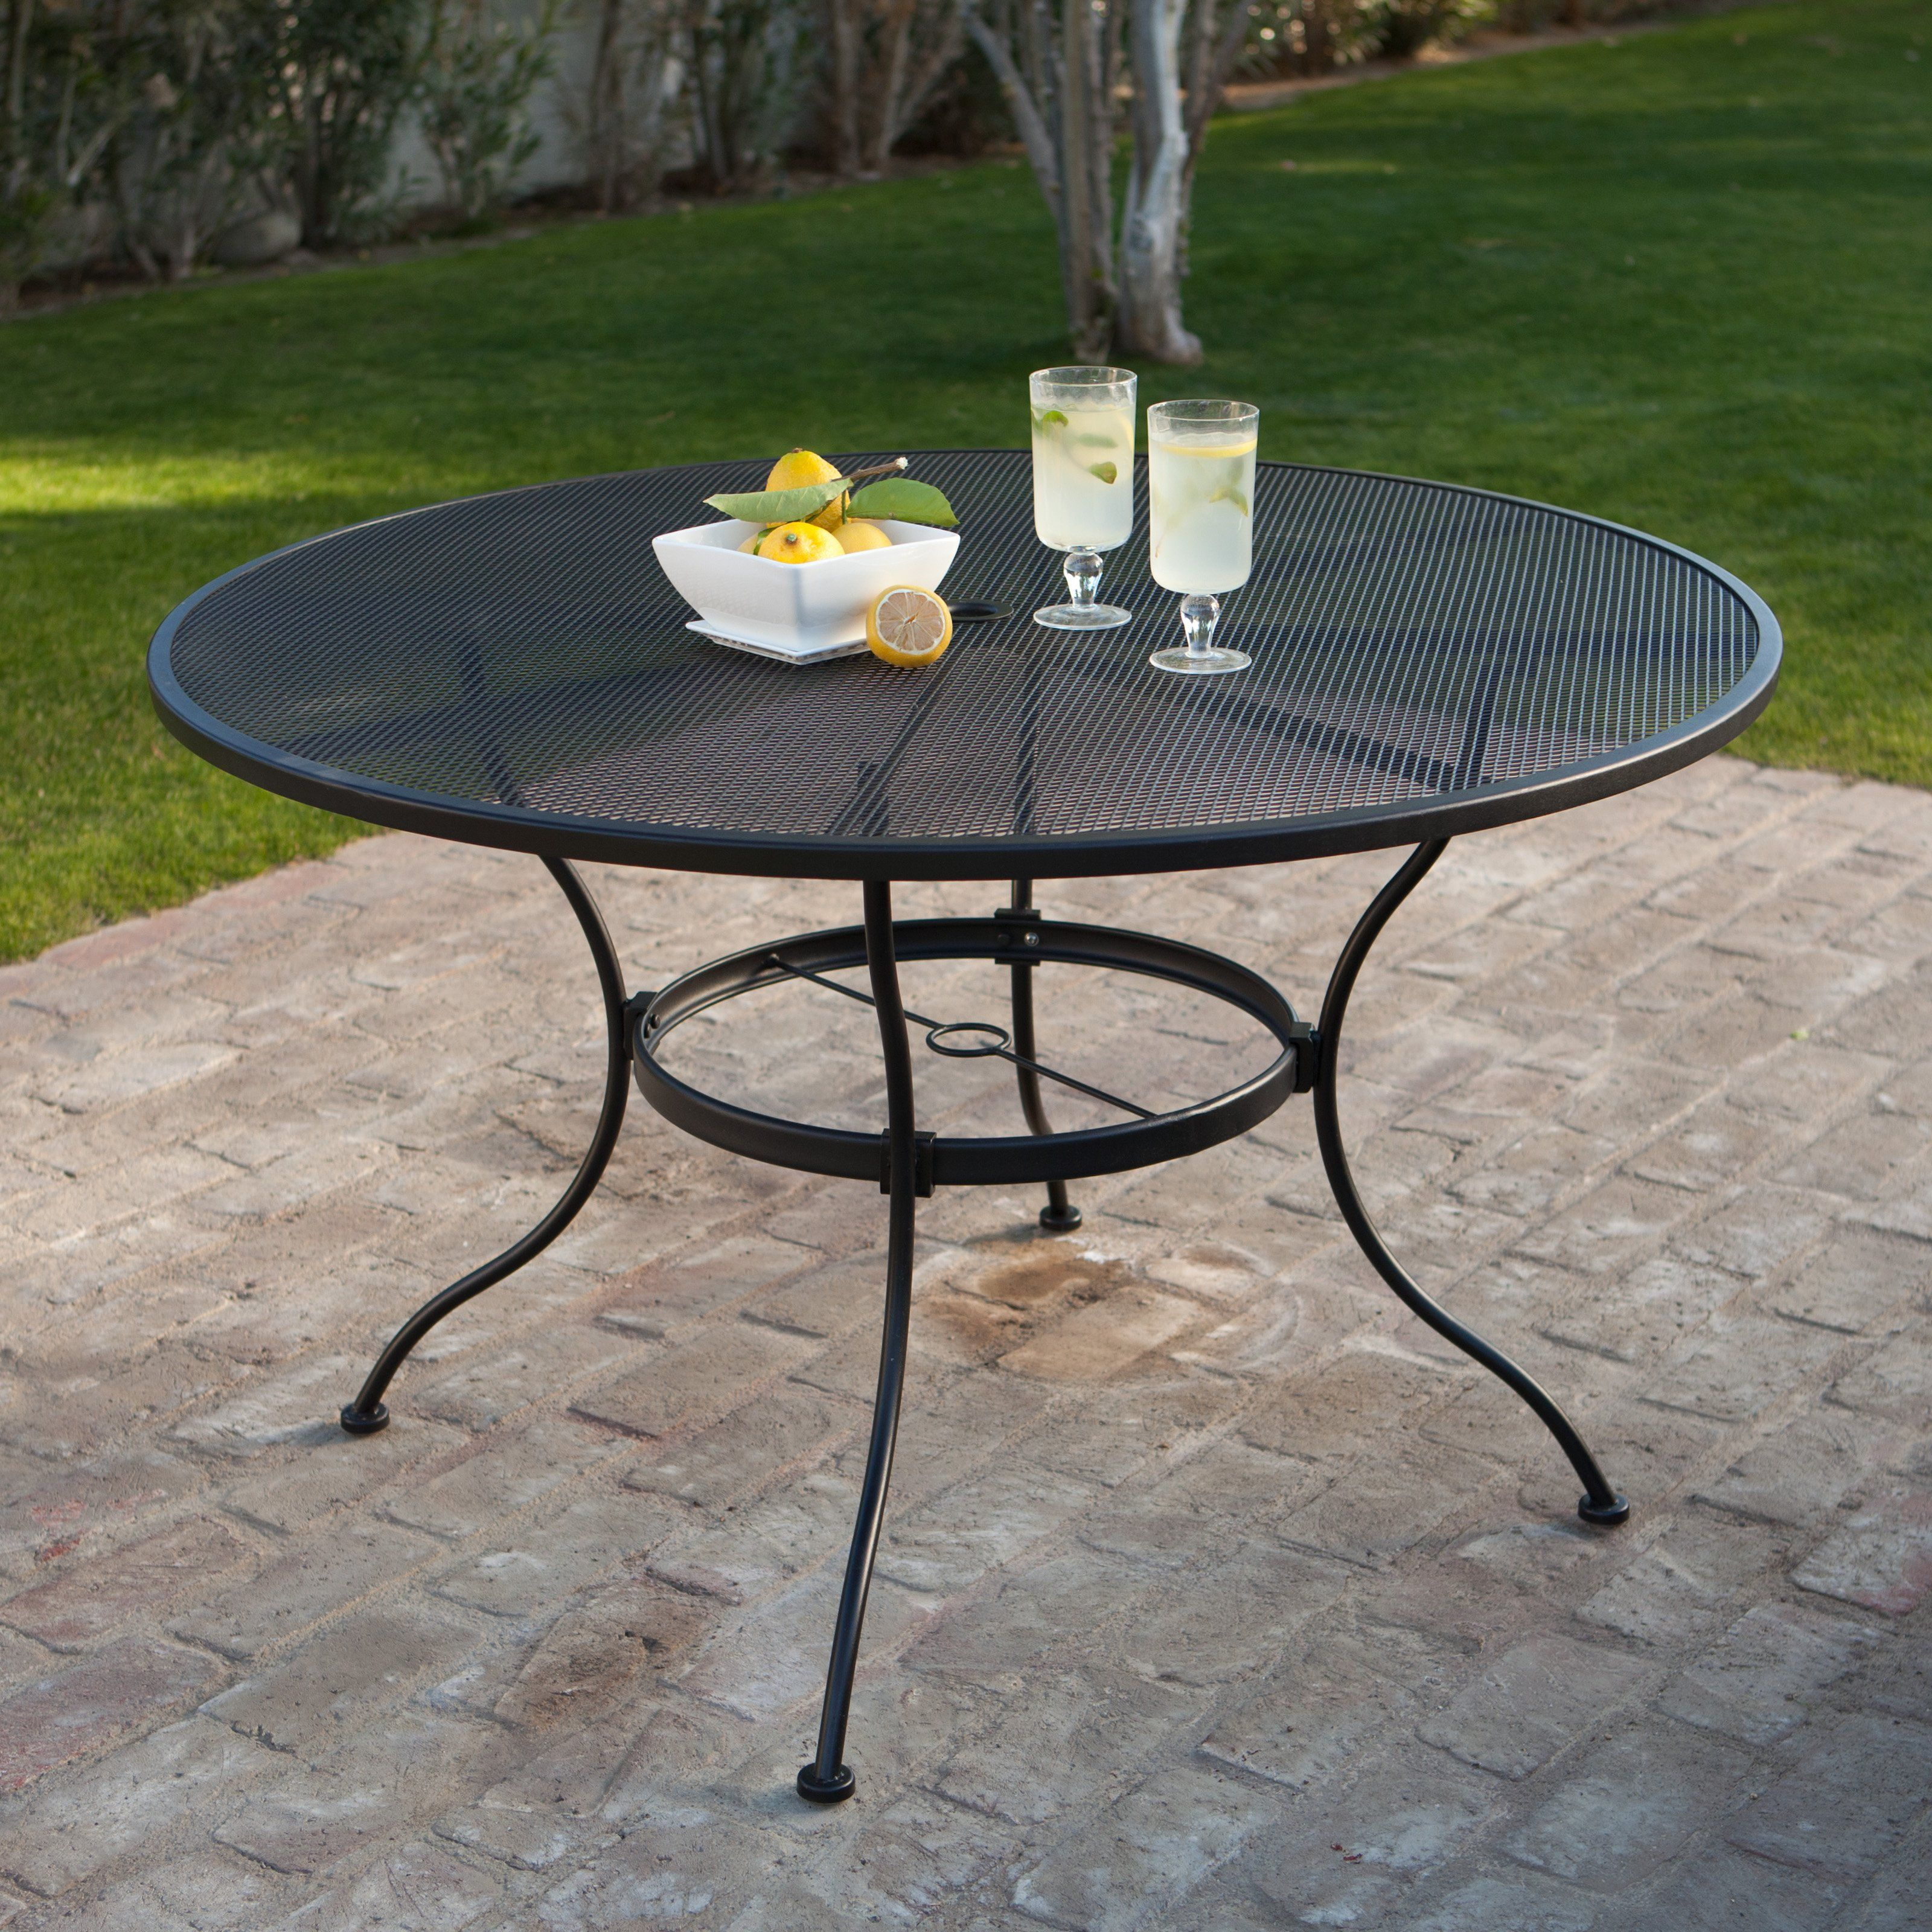 Belham Living Stanton 48 in. Round Wrought Iron Patio Dining Table ...